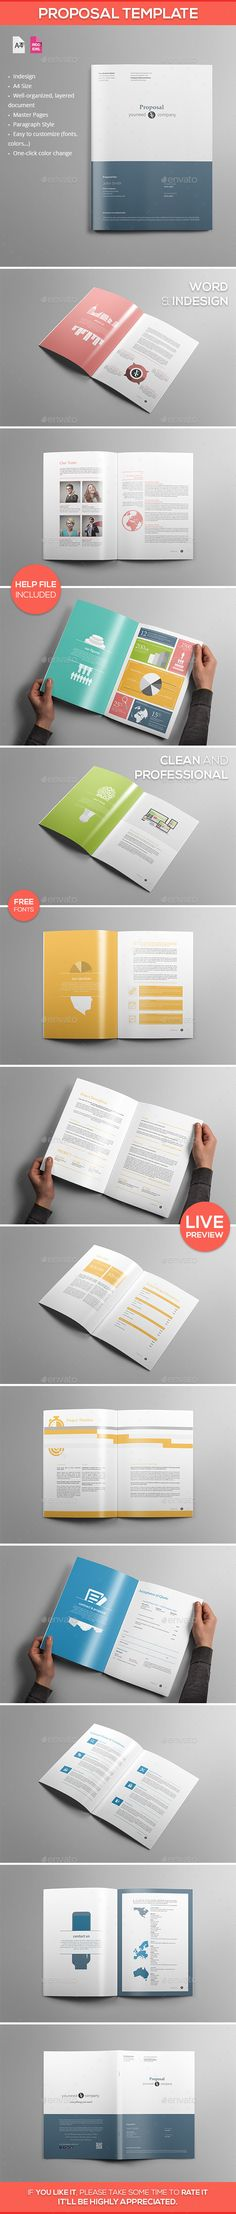 free proposal template%0A modern cover letter template